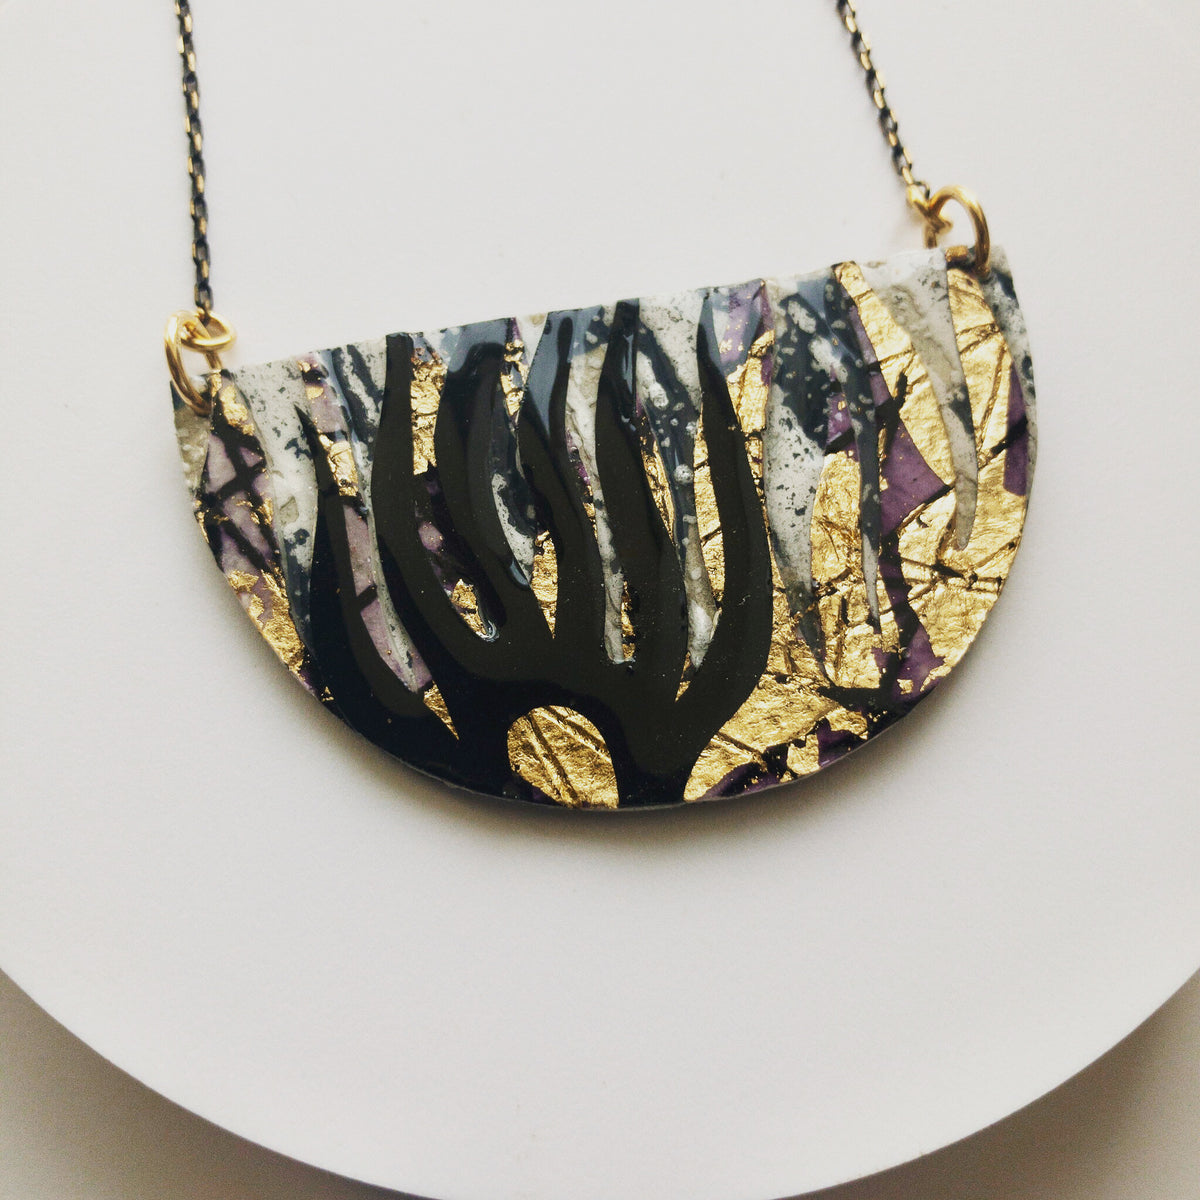 Bláth batik textile necklace in dove/black/gold/aubergine